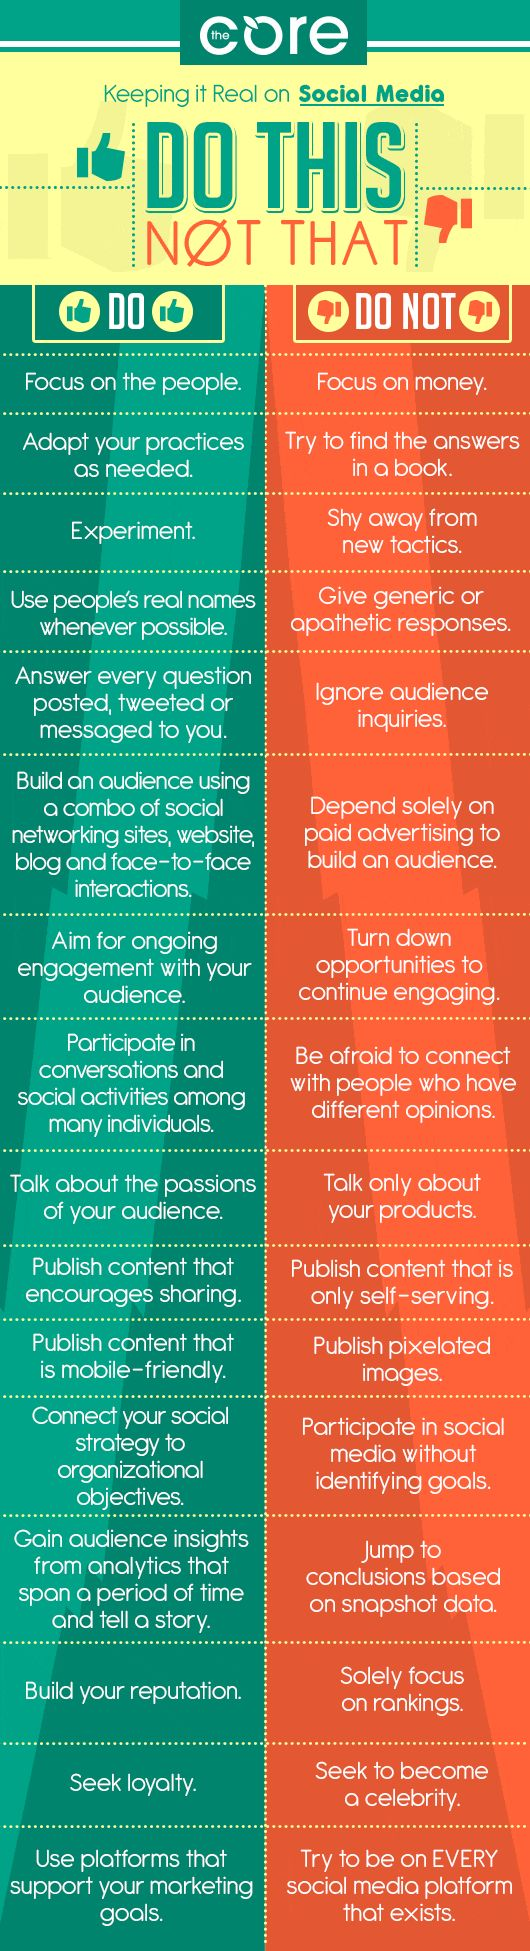 32 Do's and Don'ts for an Awesome Social Media Marketing Strategy